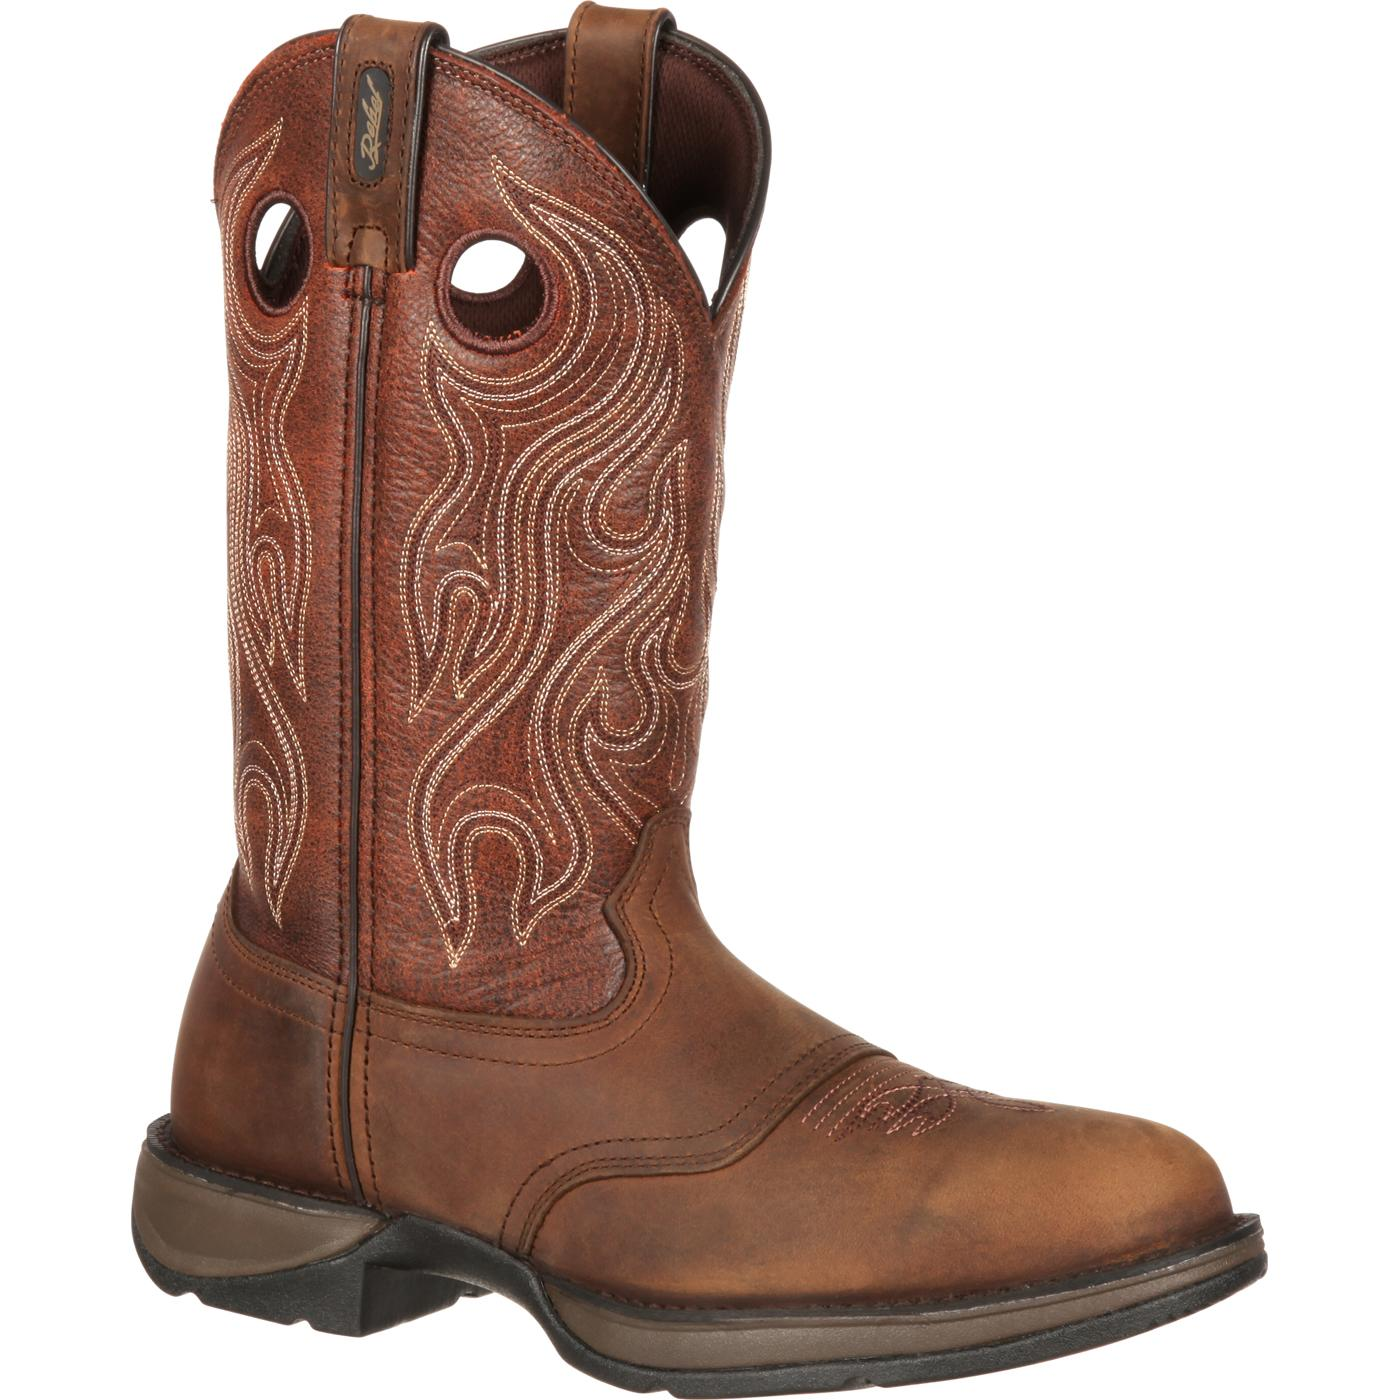 Rebel by Durango Brown Saddle Western Boot